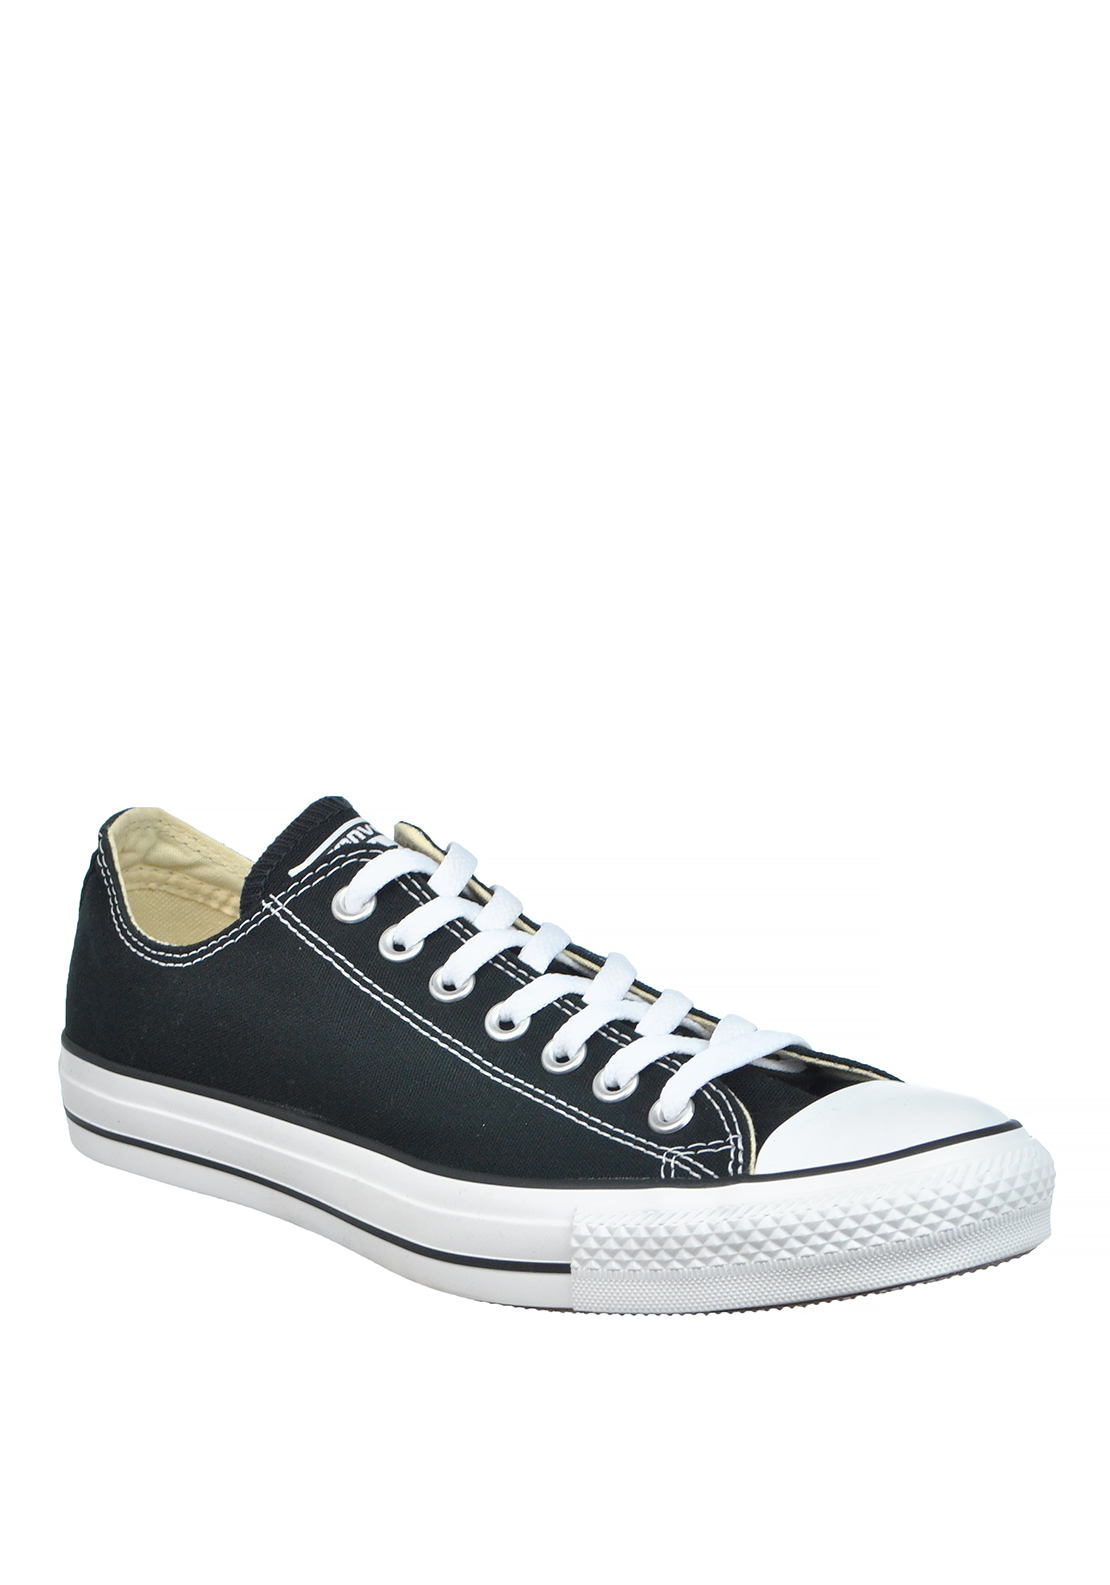 Converse Mens All Star Ankle Canvas Trainers, Black